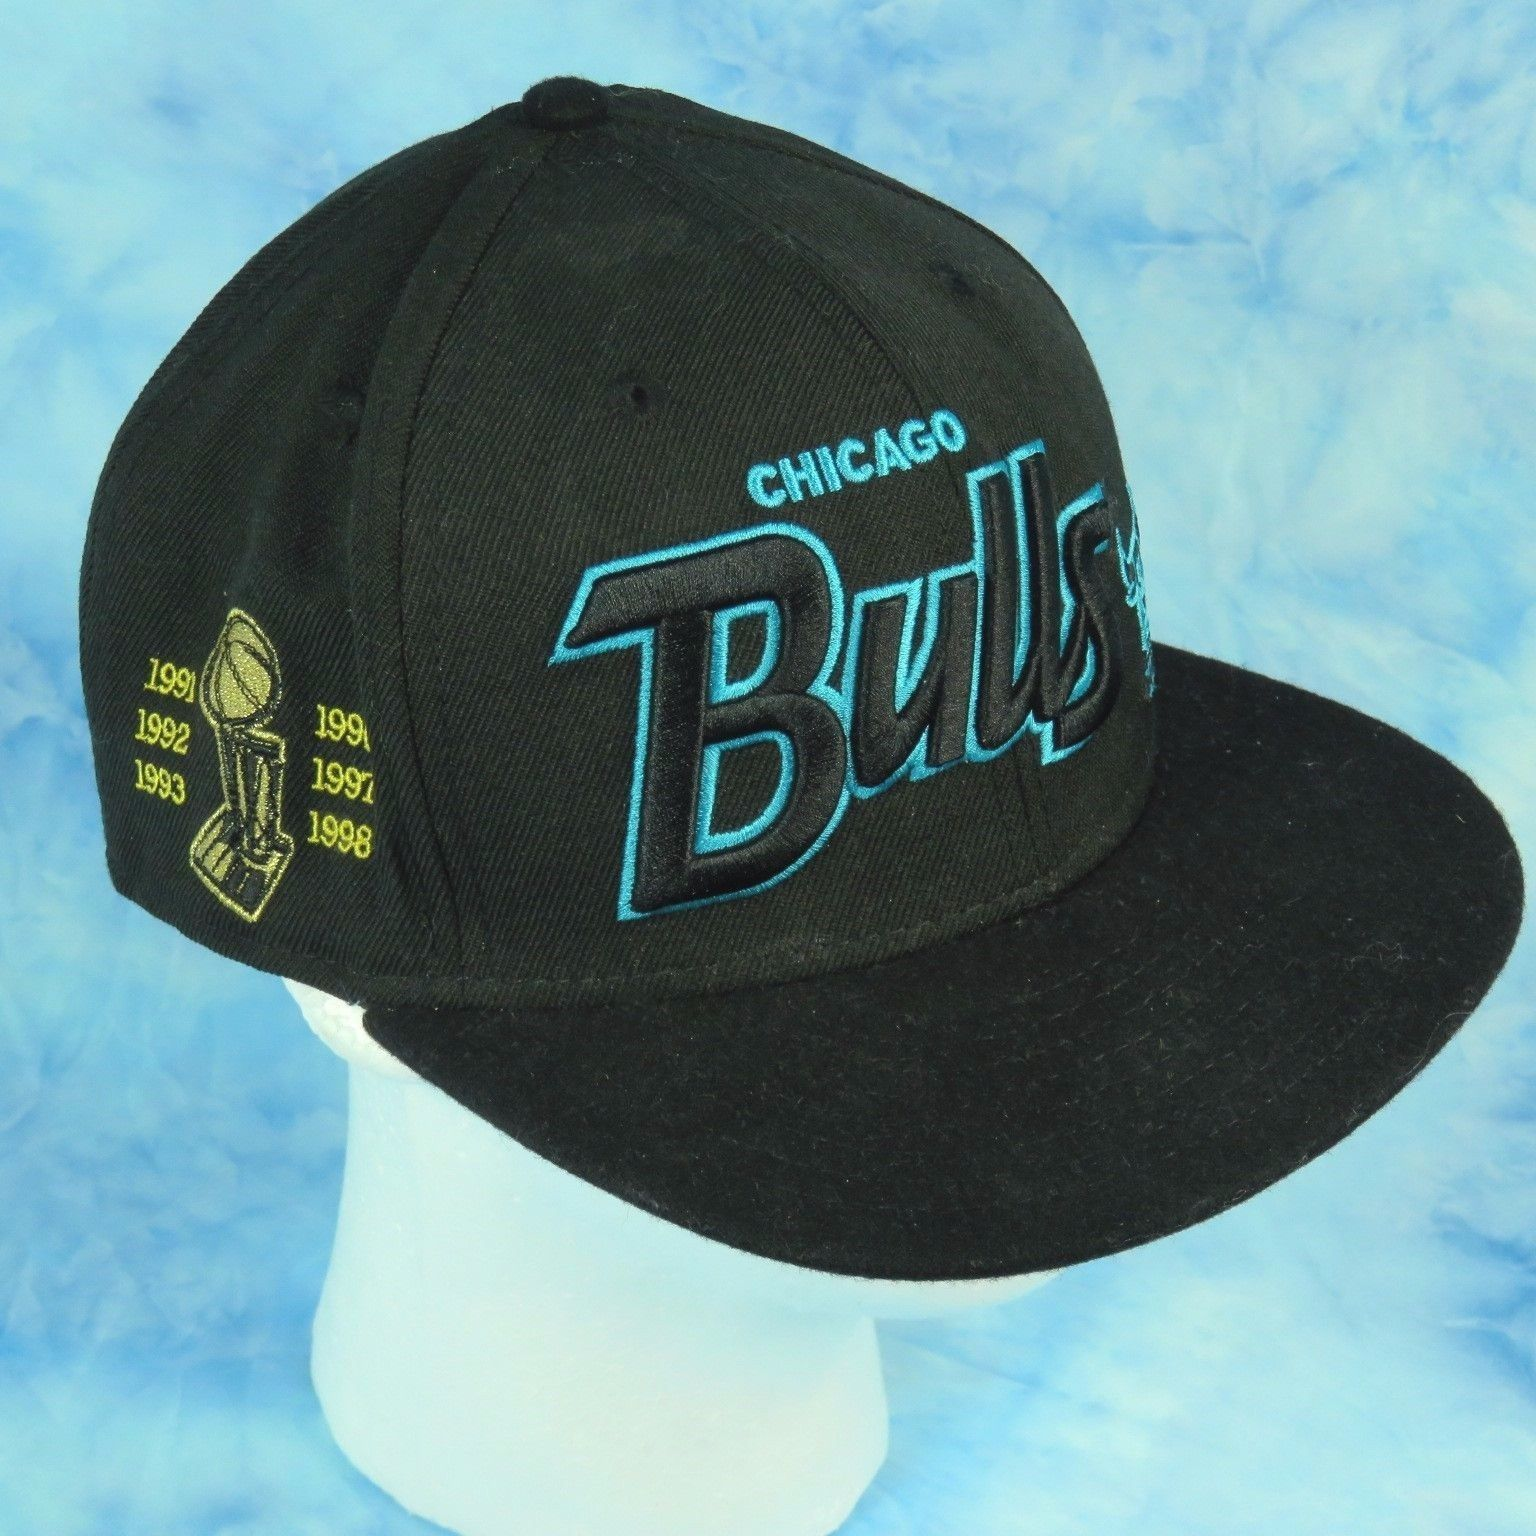 c3dec87b5df New Era Chicago Bulls Black Aqua Script Wool Snapback Hat Cap 90s  Championships